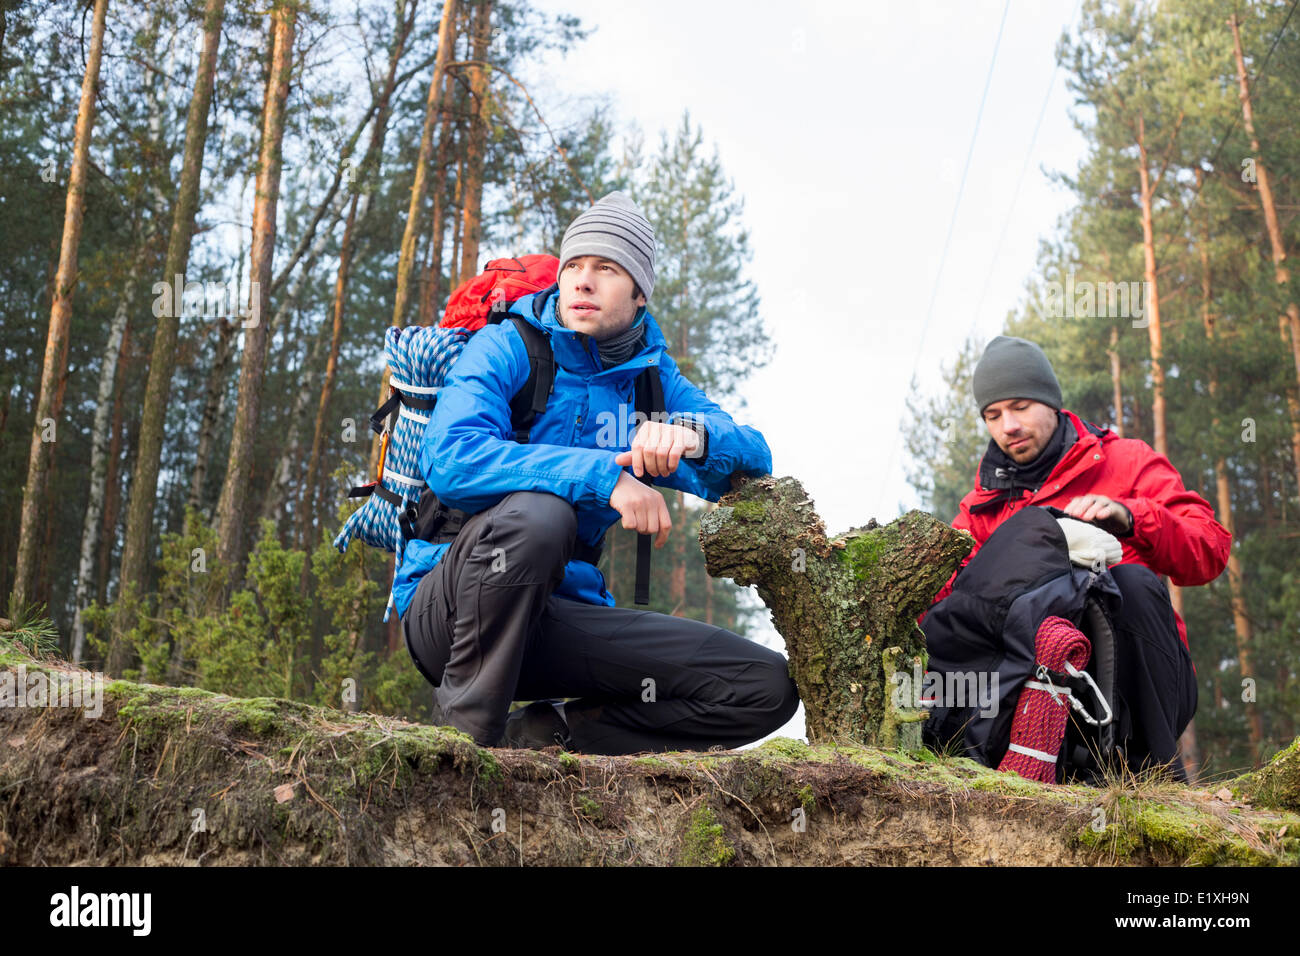 Male hikers in forest - Stock Image